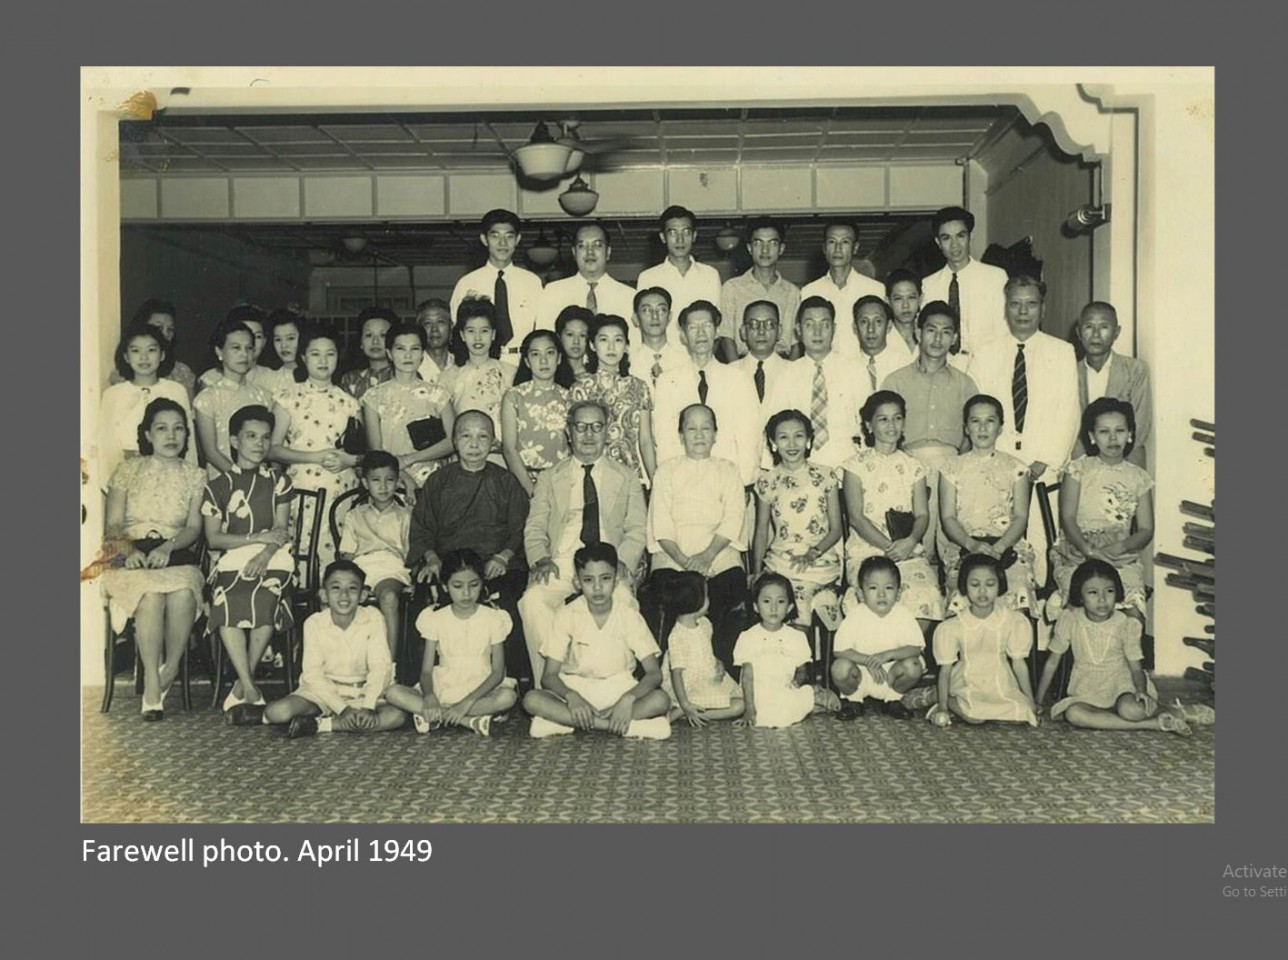 Tan Kah Kee's family. (SPH; Photo provided by Tan Kah Kee's granddaughter, Peggy Tan)